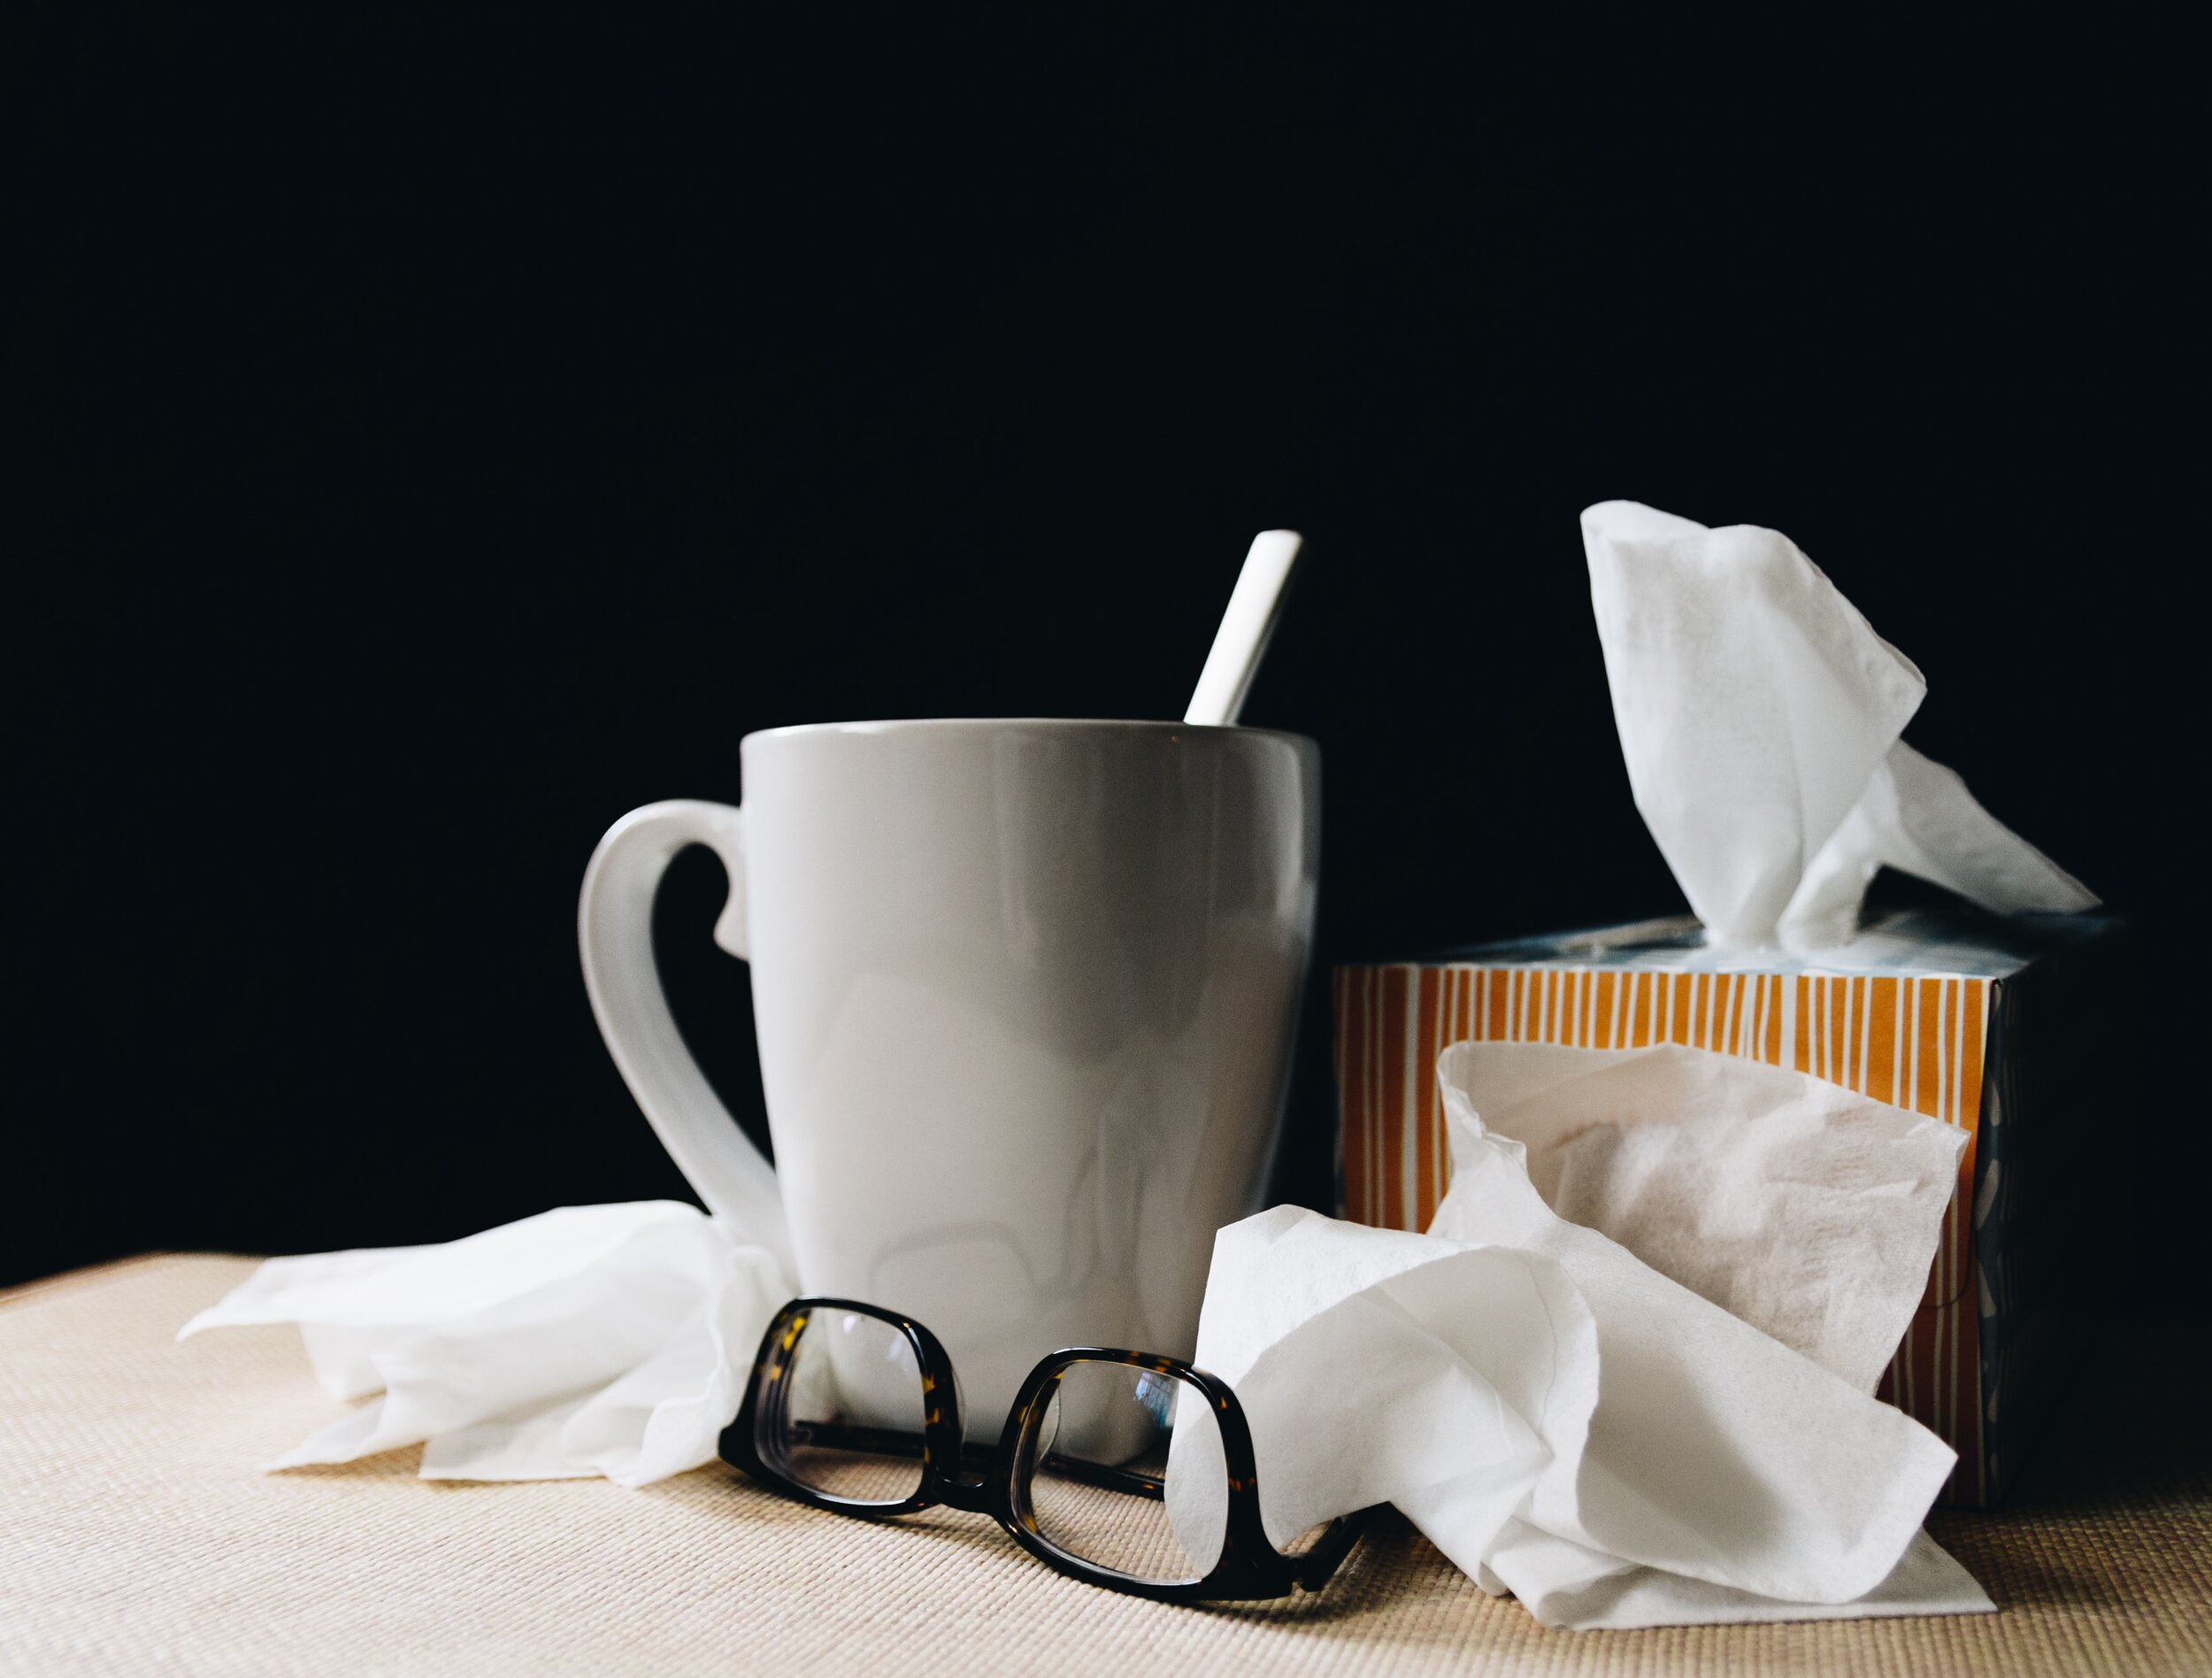 Taking care of your children when they're sick is an important role as a parent.